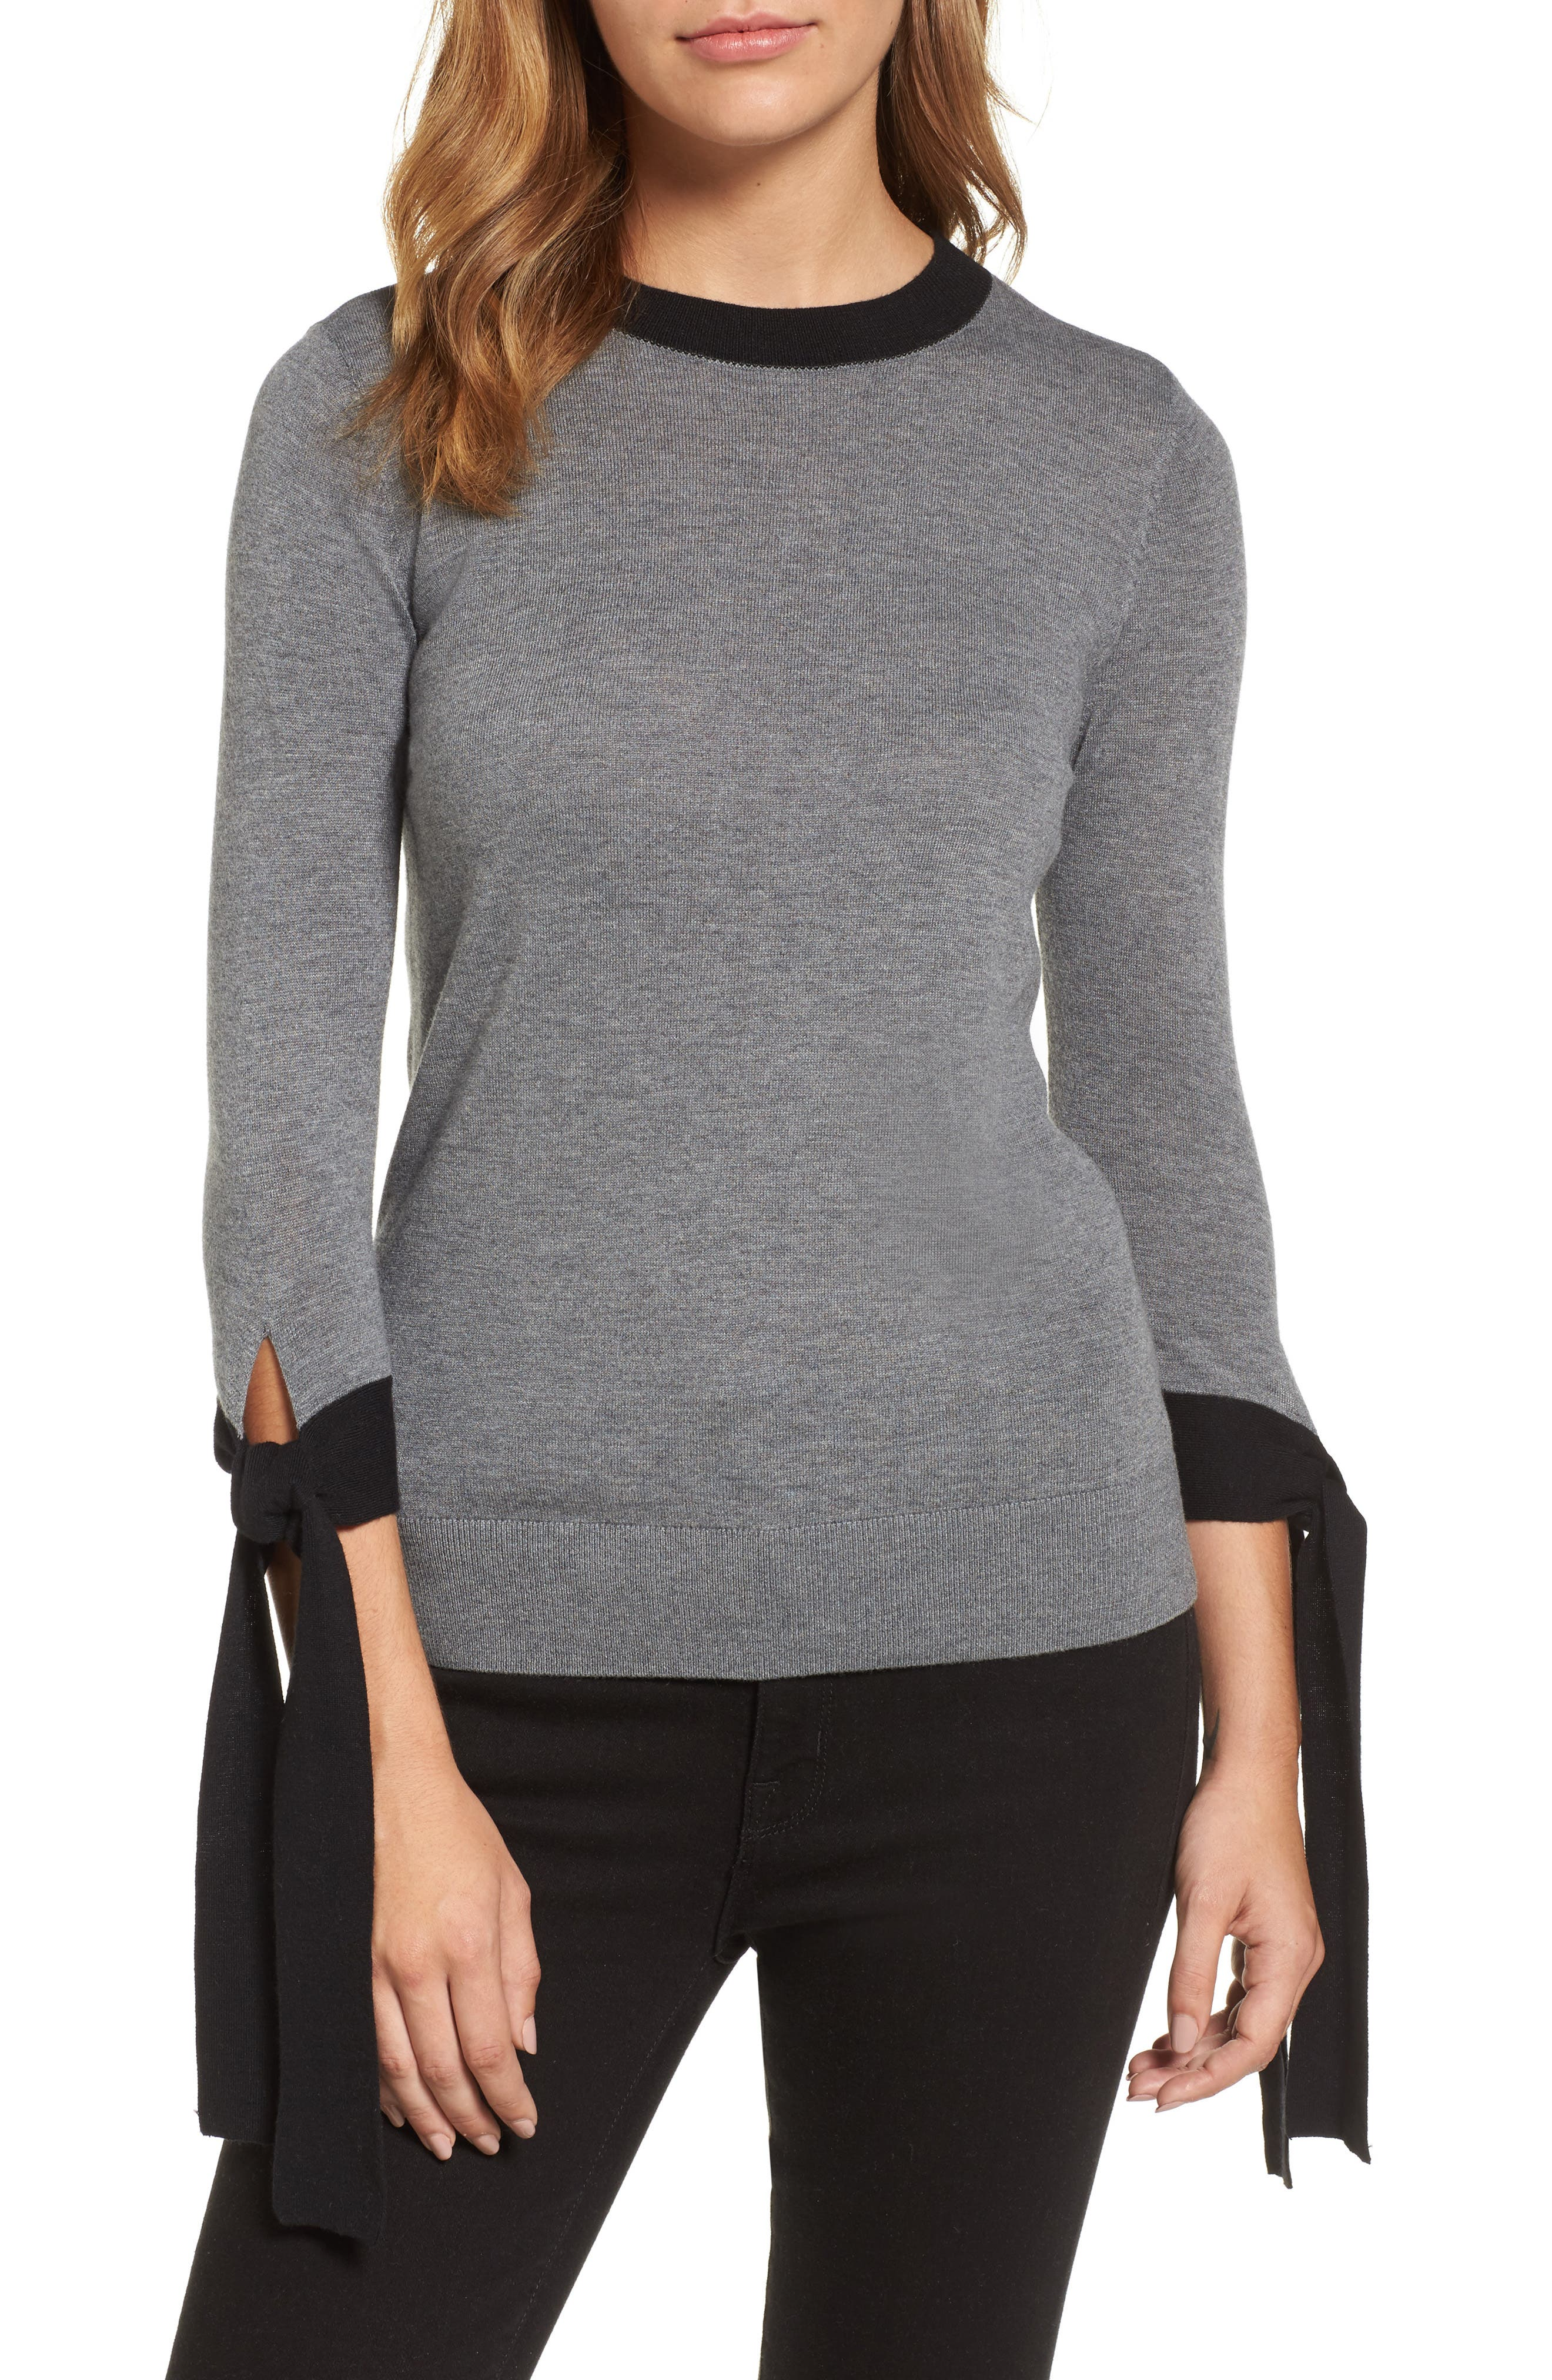 Tie Sleeve Crewneck Sweater,                             Main thumbnail 1, color,                             GREY- BLACK COLORBLOCK